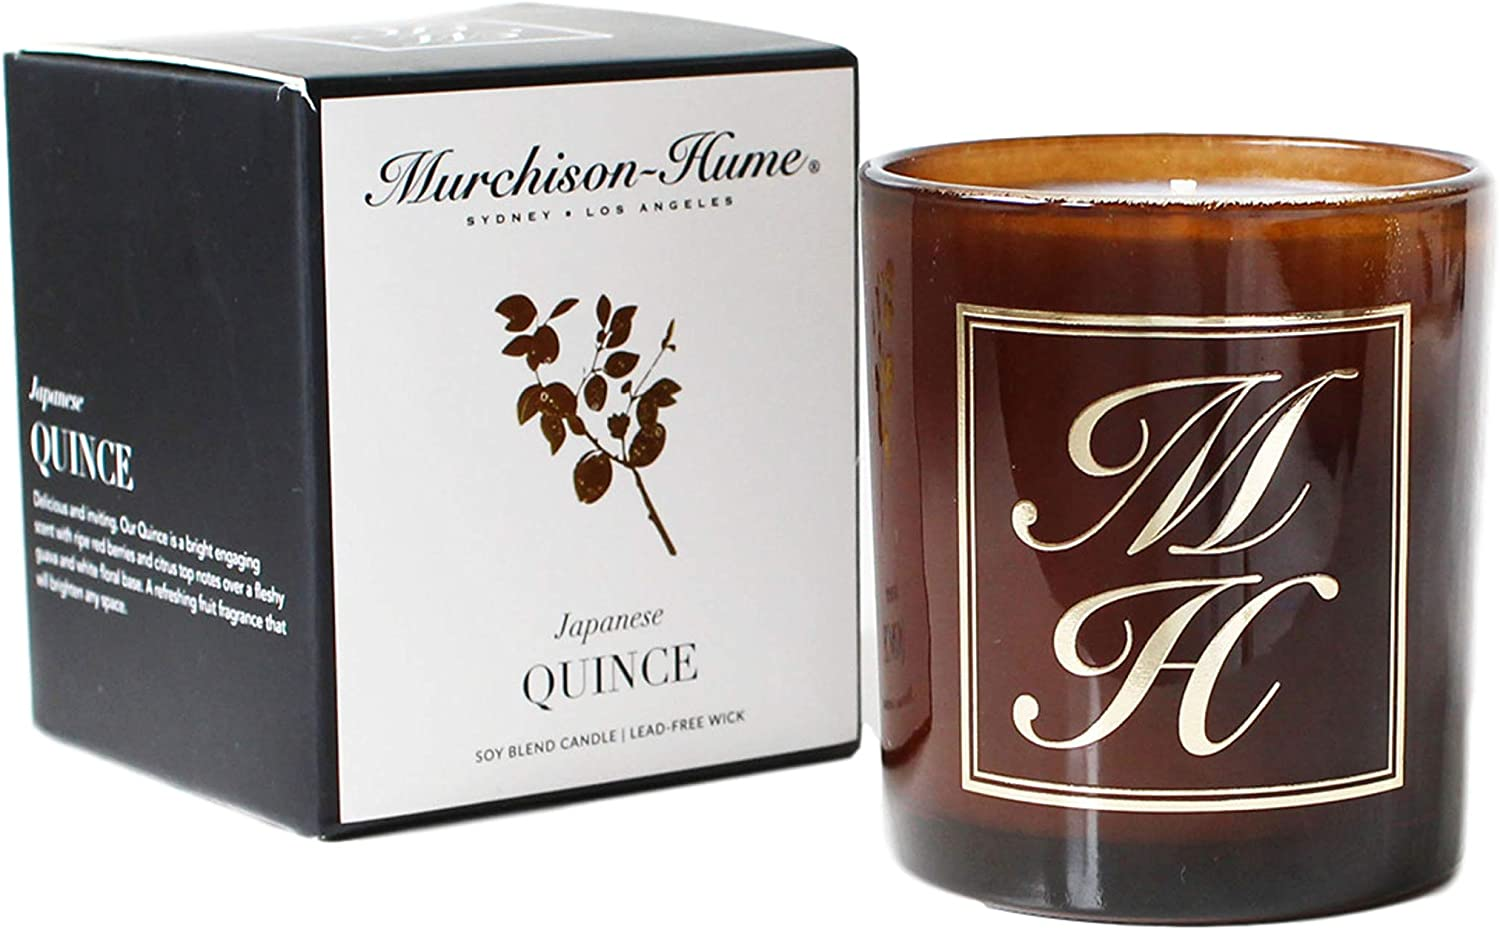 Murchison-Hume Scented Candle Soy-Blend Aromatherapy Natural Candles in Glass Jar — Japanese Quince Fragrance with 60 Hours Burn Time and Cotton Wick (8.5oz)